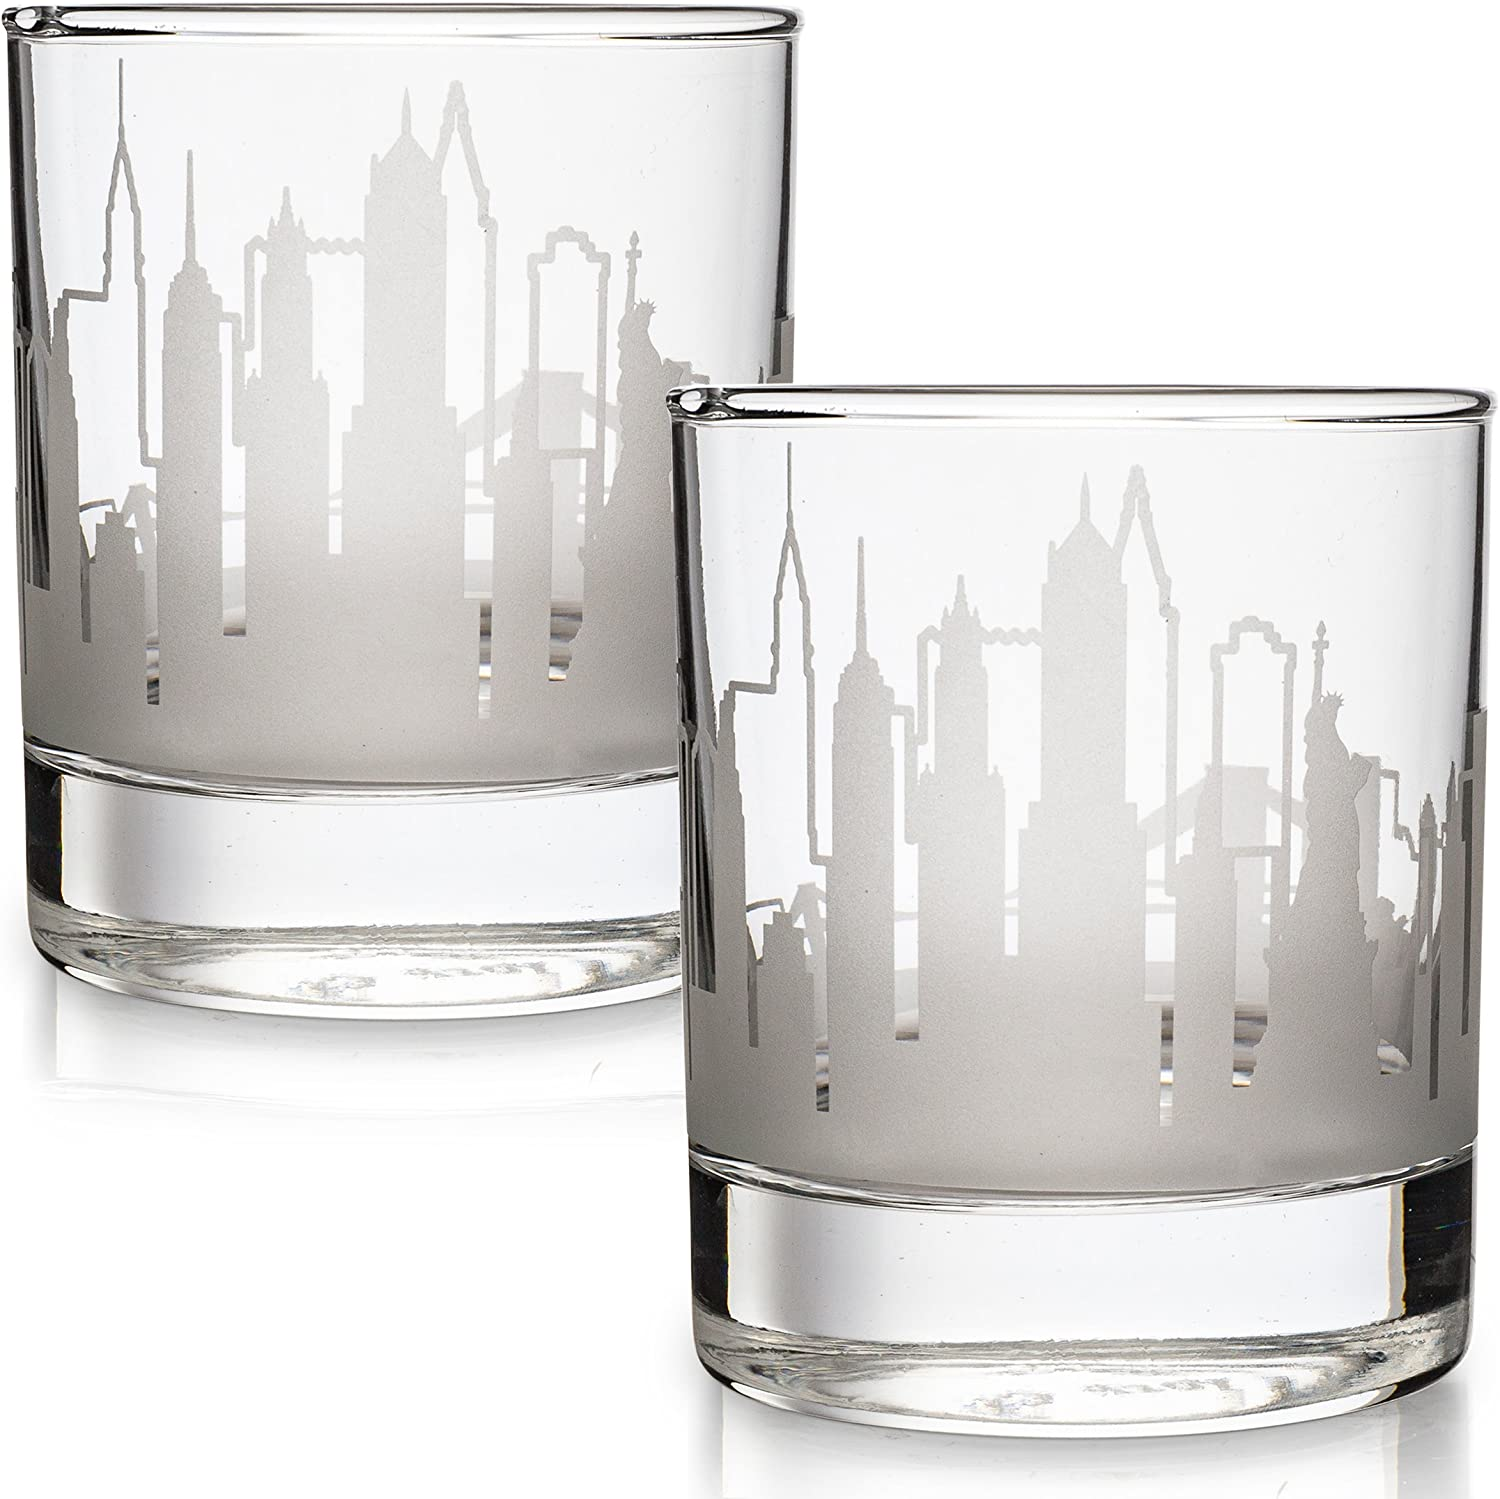 Goodbye Tension HBG16 Hello Pension Etched 9 oz Whiskey or Scotch Glass Retirement Gift Highball Rocks Glass for Men